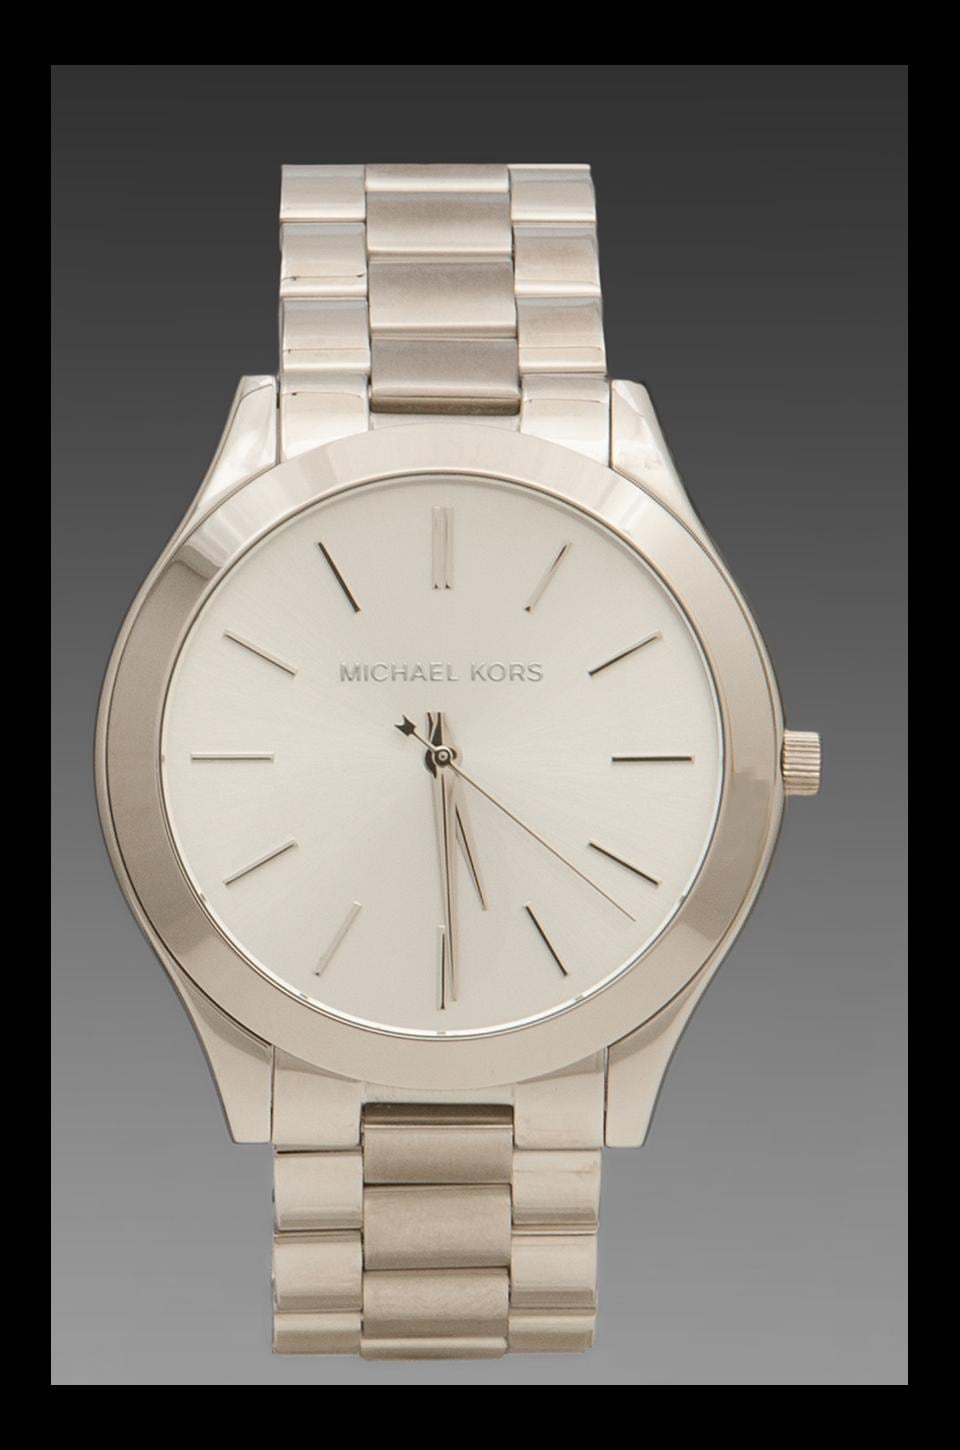 Michael Kors Slim Classic Watch in Silver